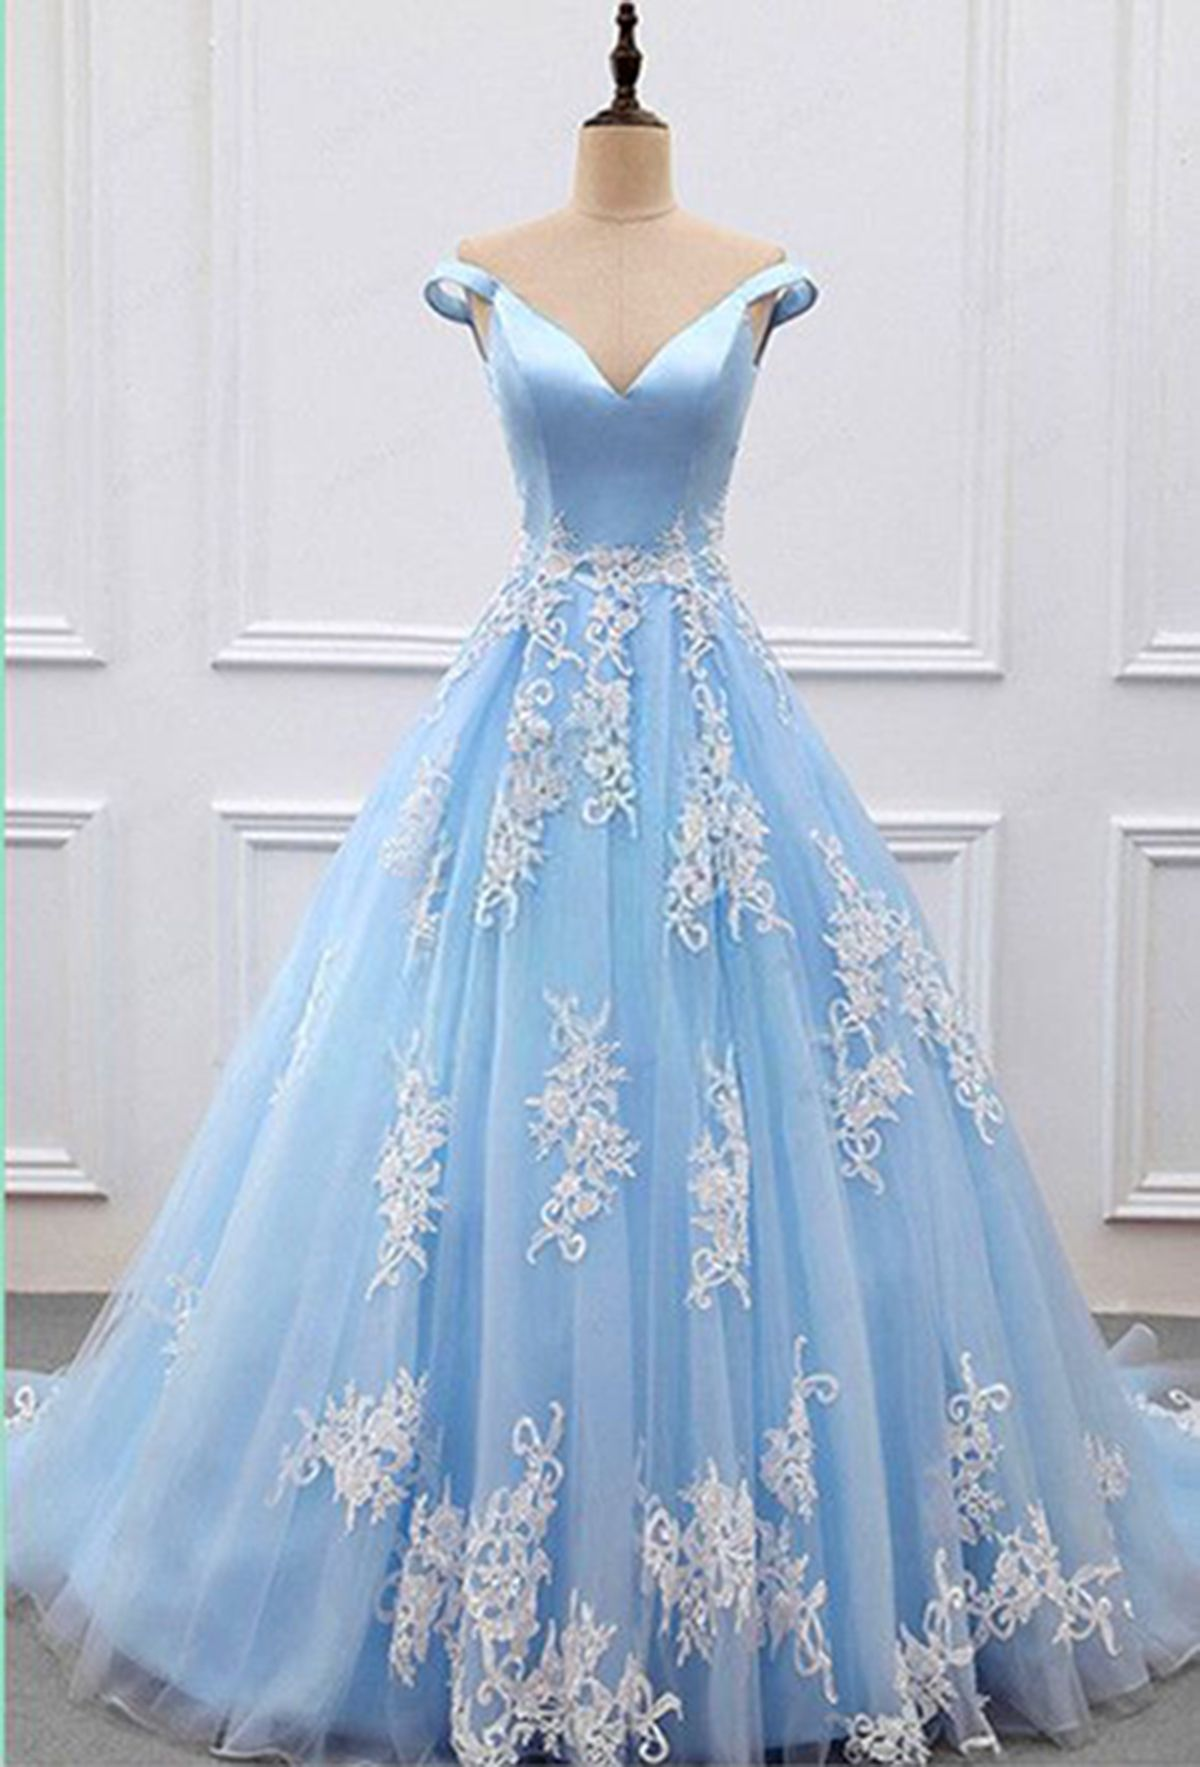 Sweet dresses stylish vneck blue tulle off shoulder prom dress